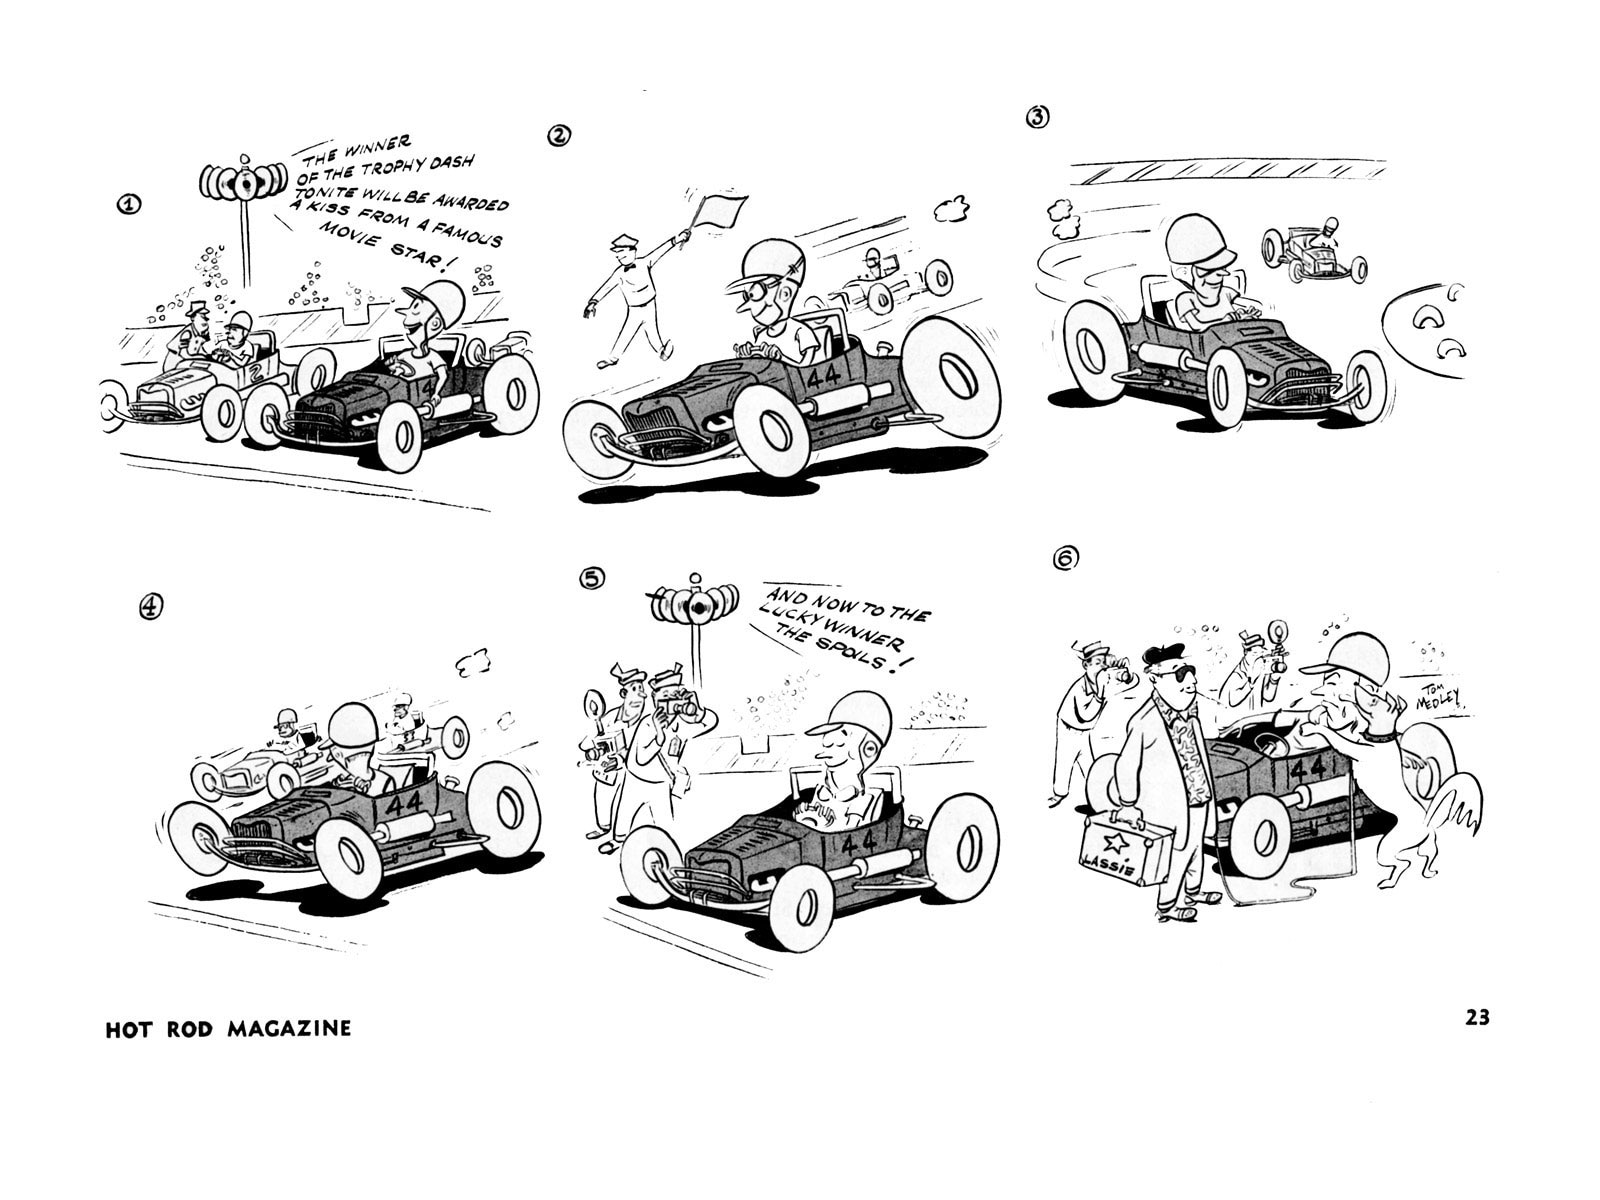 Stroker Mcgurk Cartoon Series